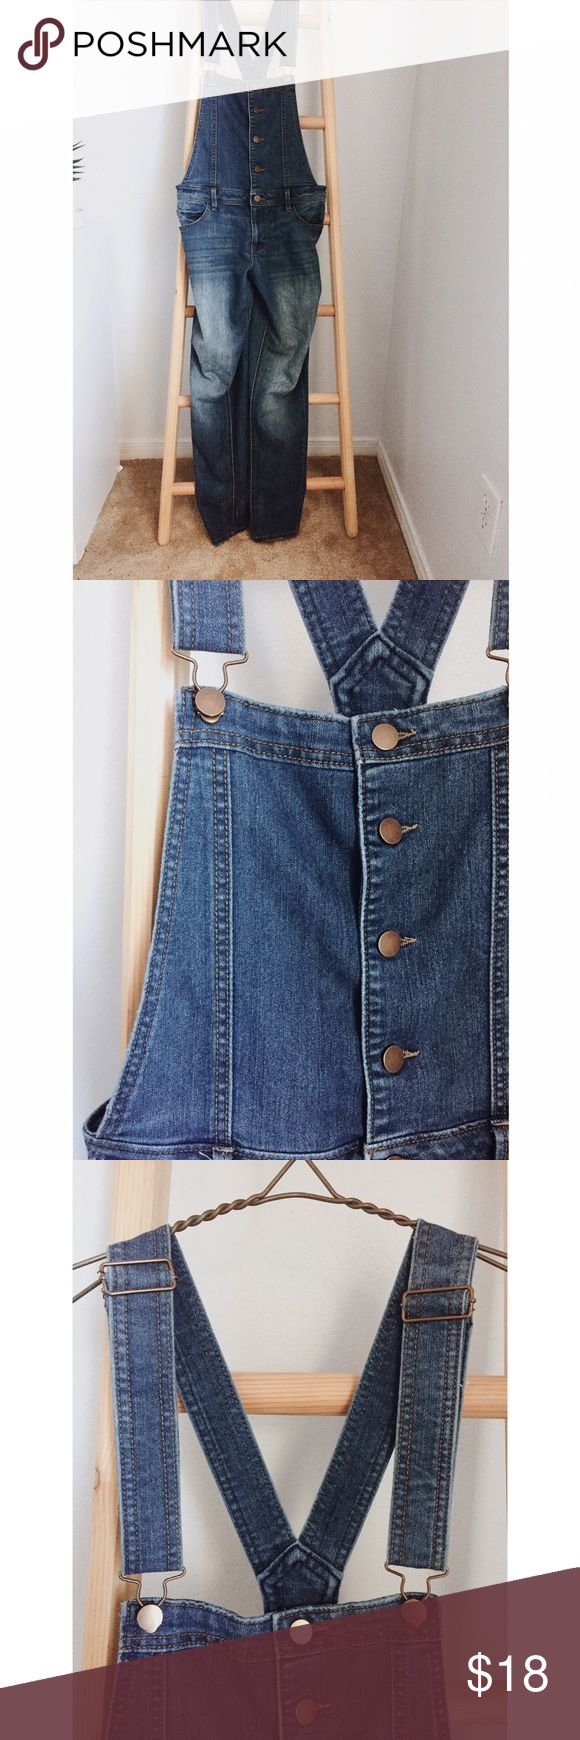 Blue jean overalls Fire Los Angeles Blue jean overalls by Fire Los Angeles. Well loved item, though no physical signs of wear. Size L. Fire Los Angeles Jeans Overalls